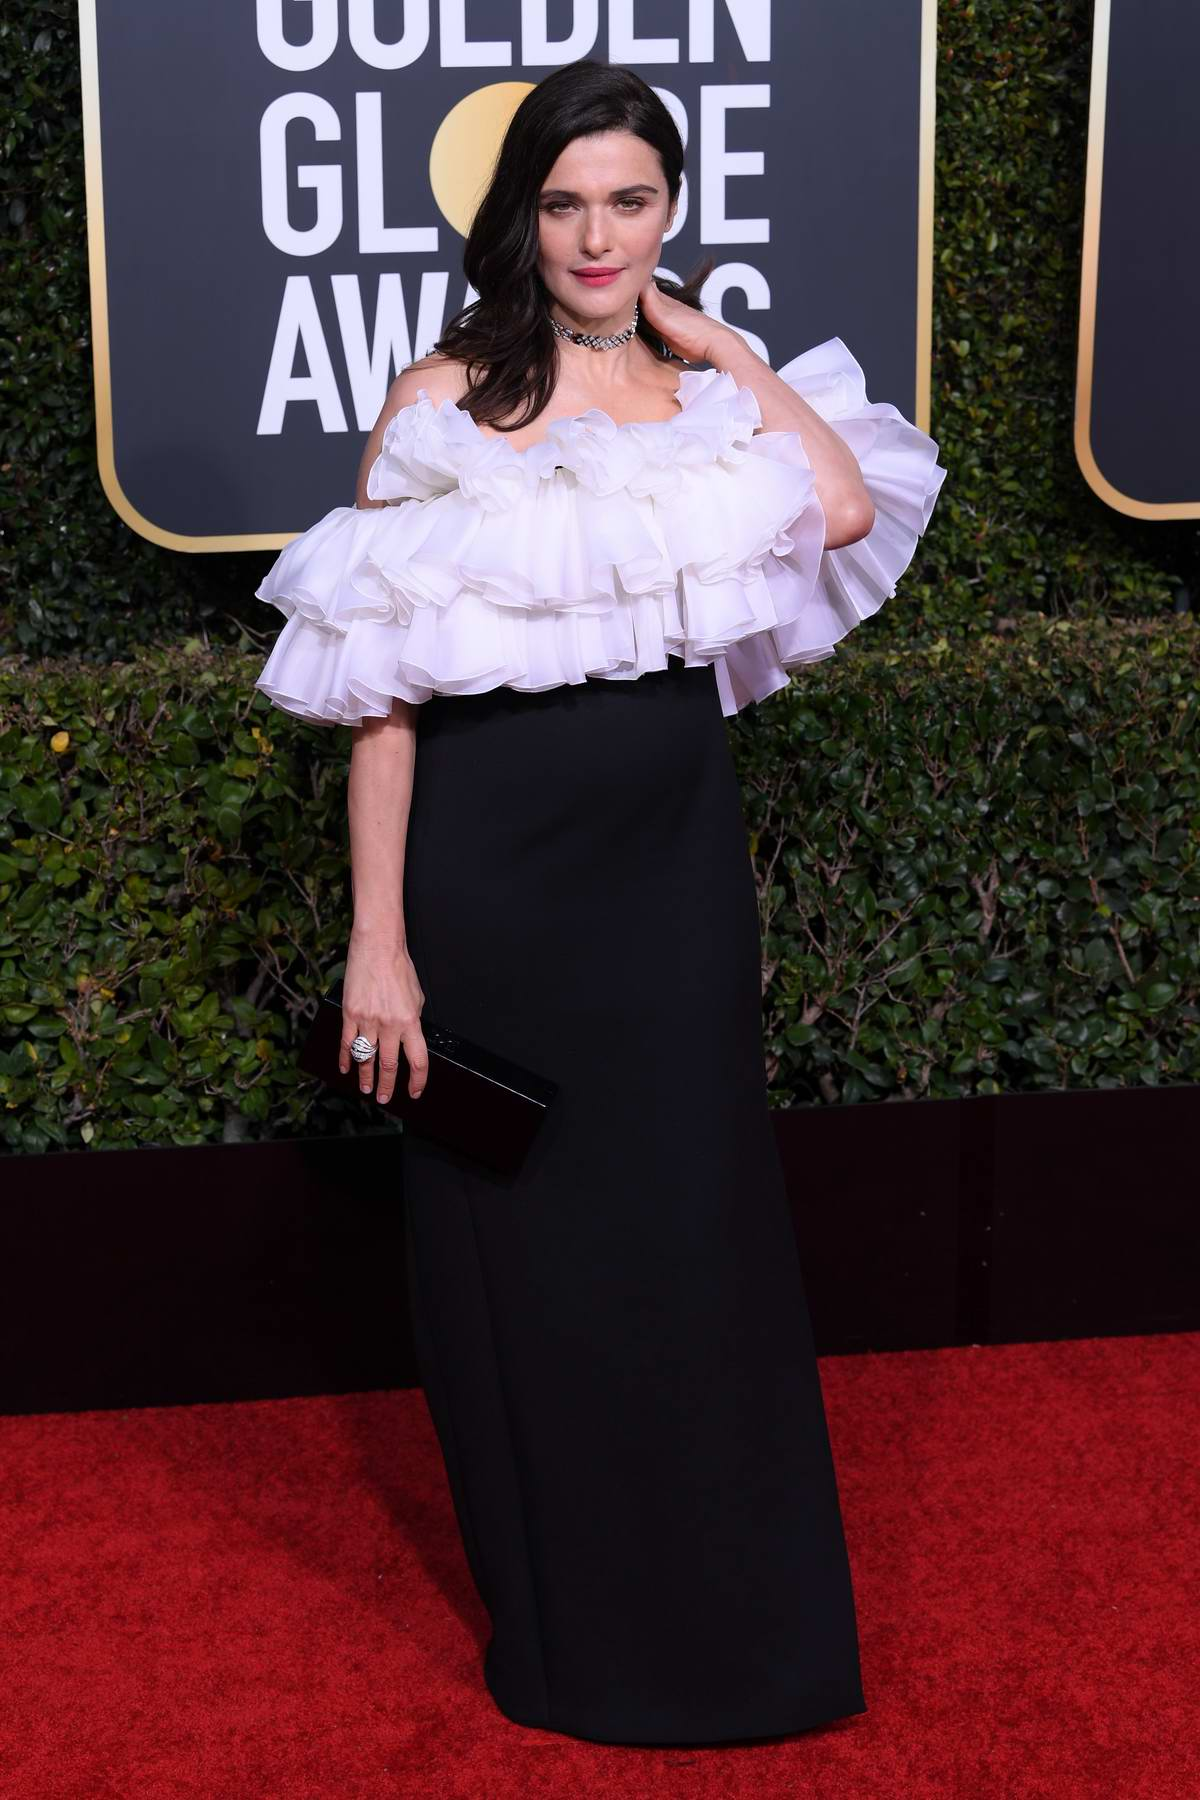 Rachel Weisz attends the 76th Annual Golden Globe Awards held at The Beverly Hilton Hotel in Los Angeles, California